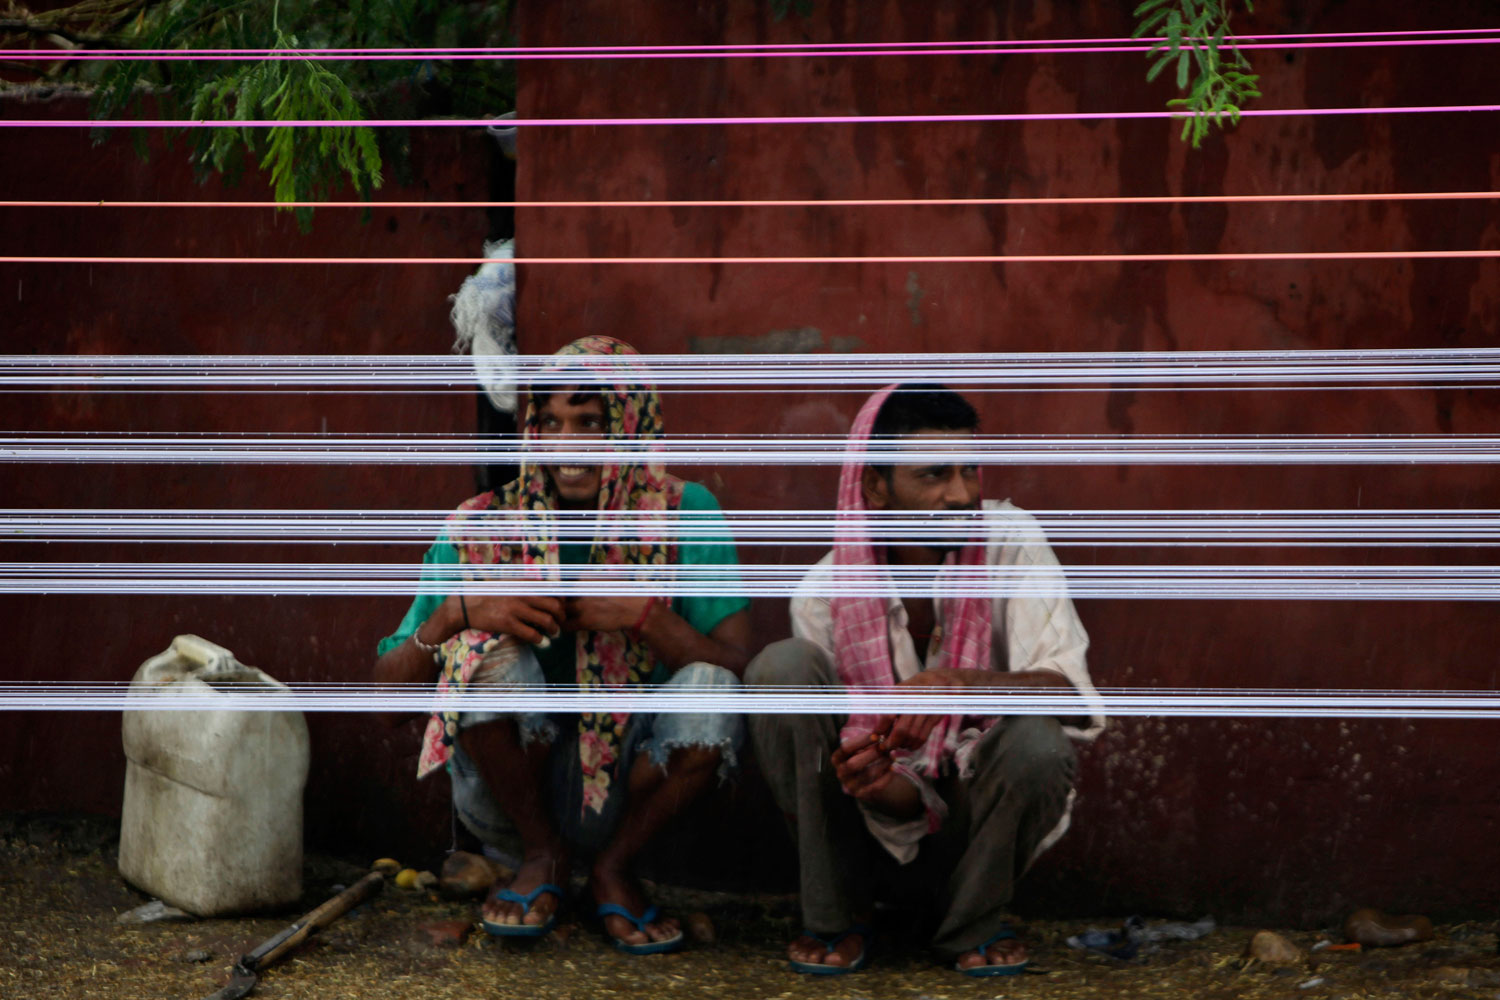 July 29, 2011. Workers take take break between coloring threads for kites under rains in Jammu, India.